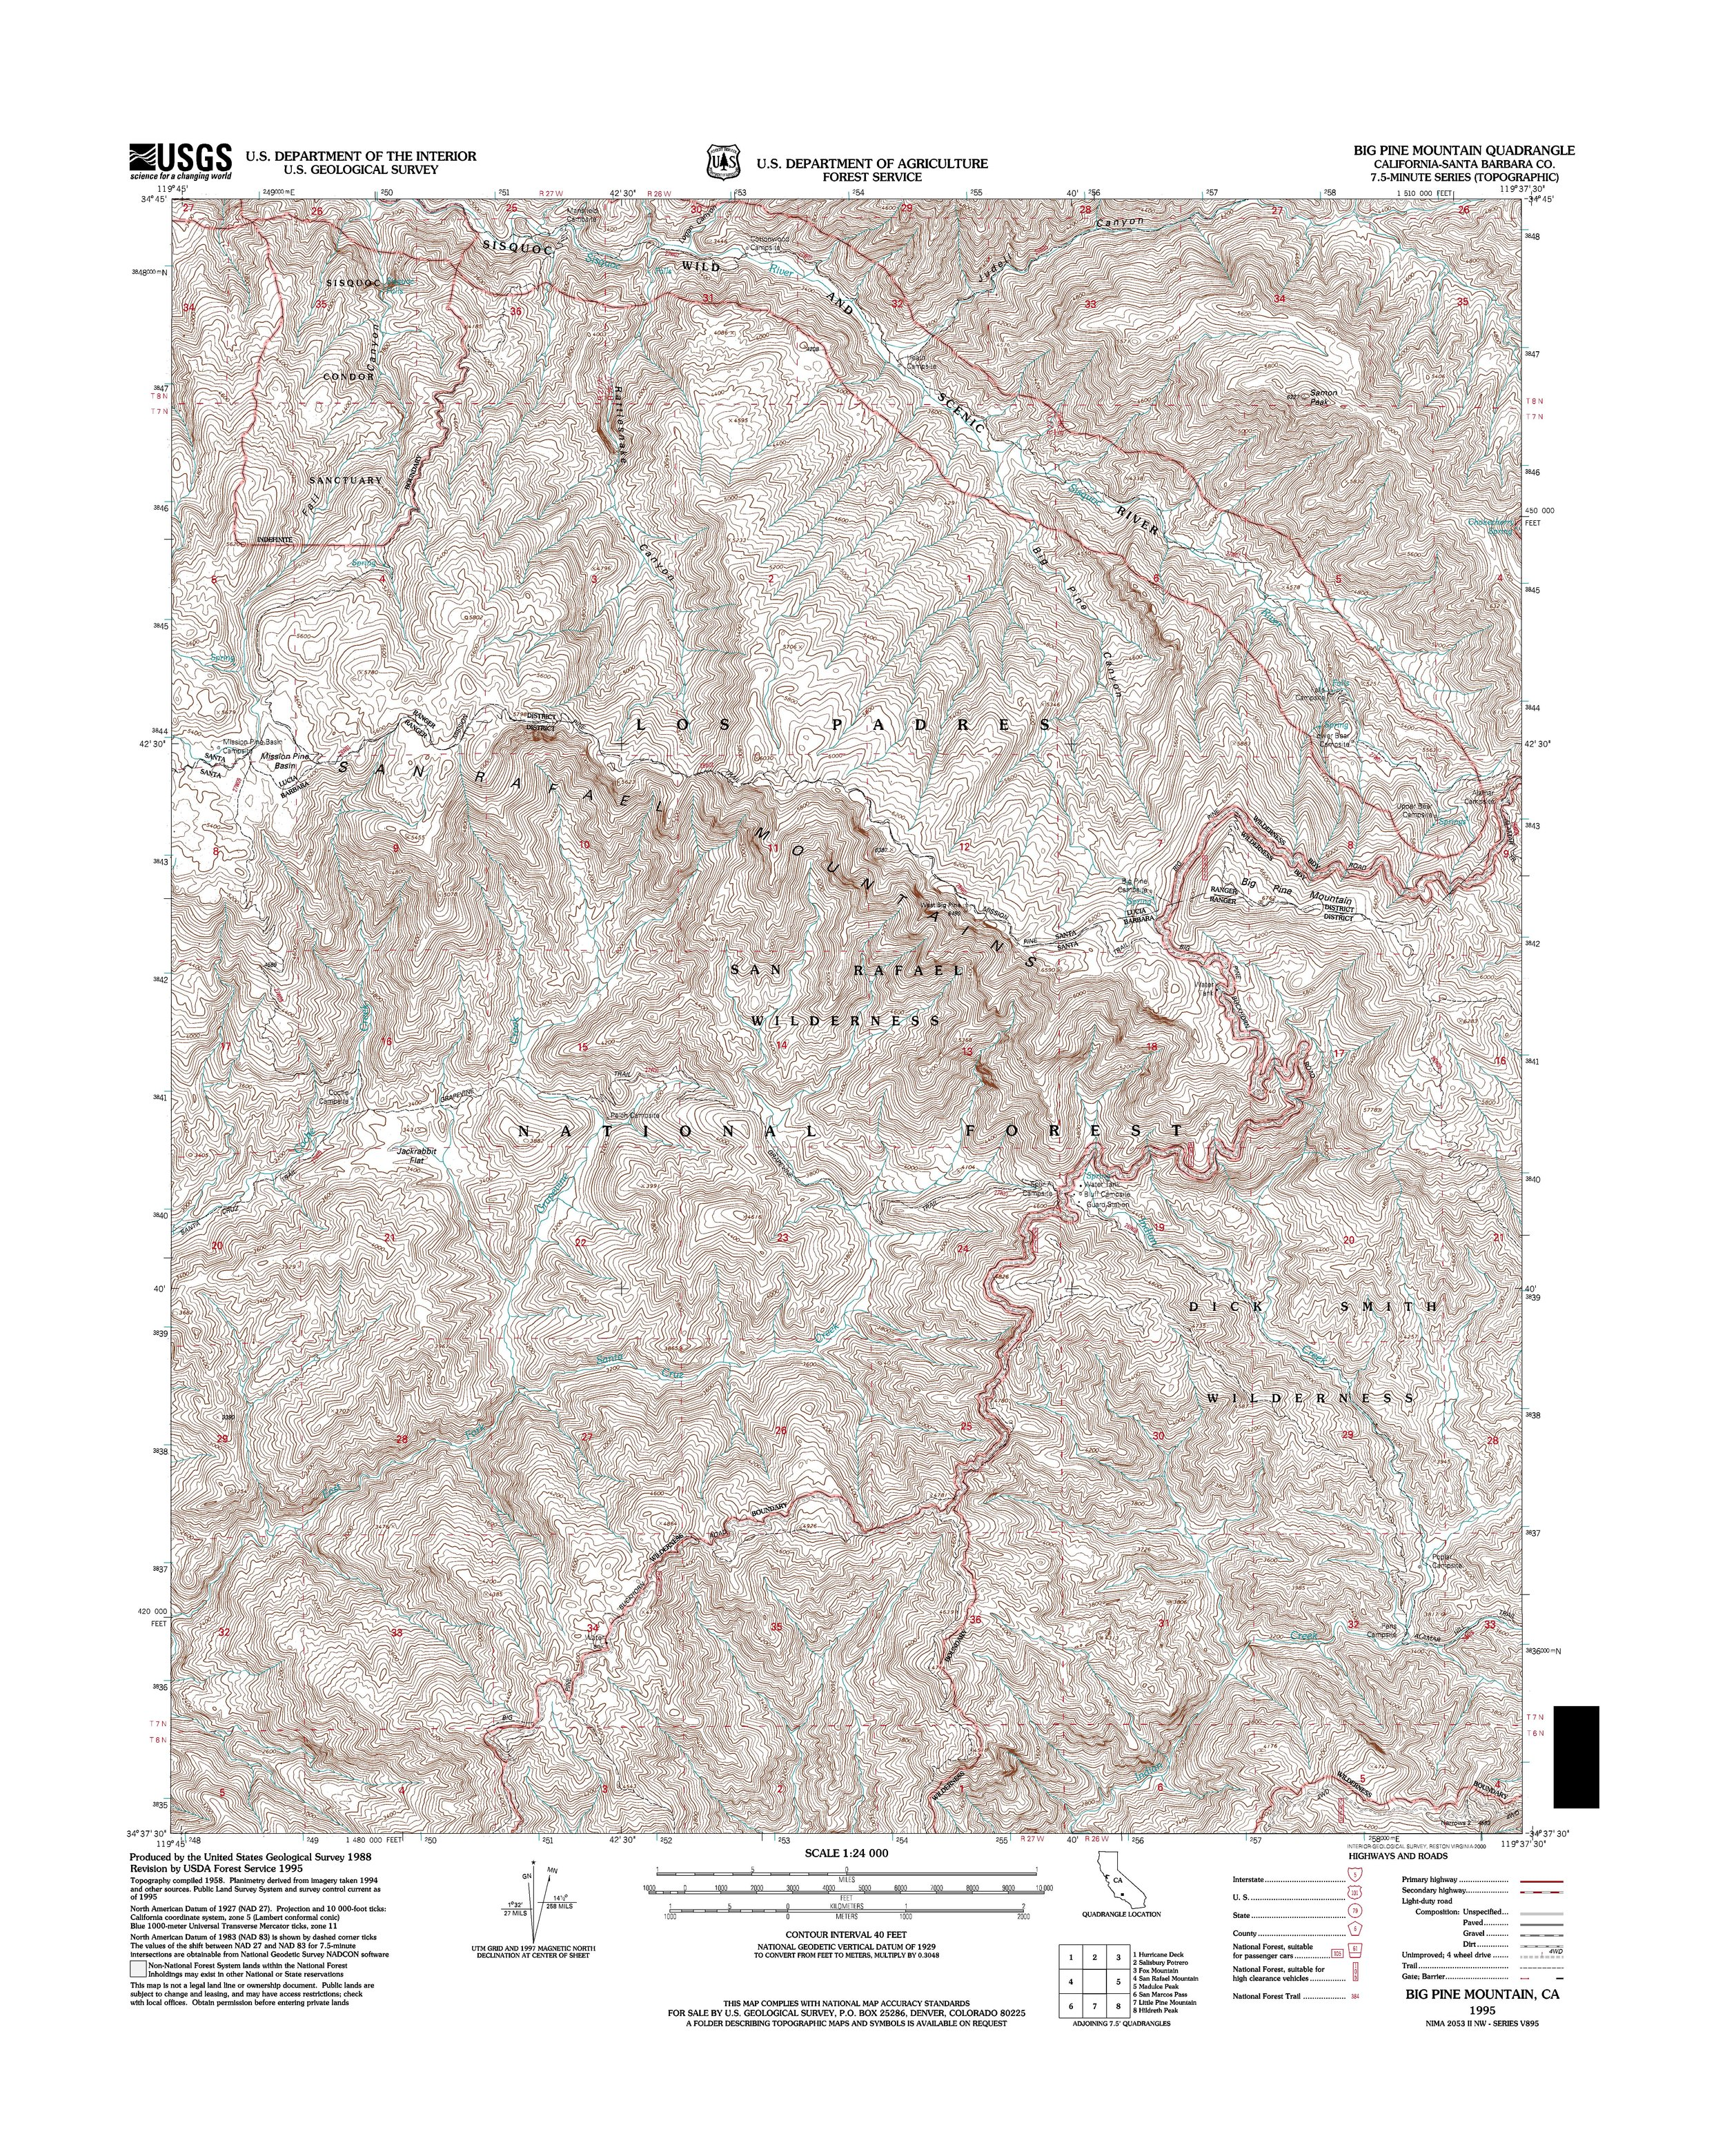 Big Pine Mountain Topography Map